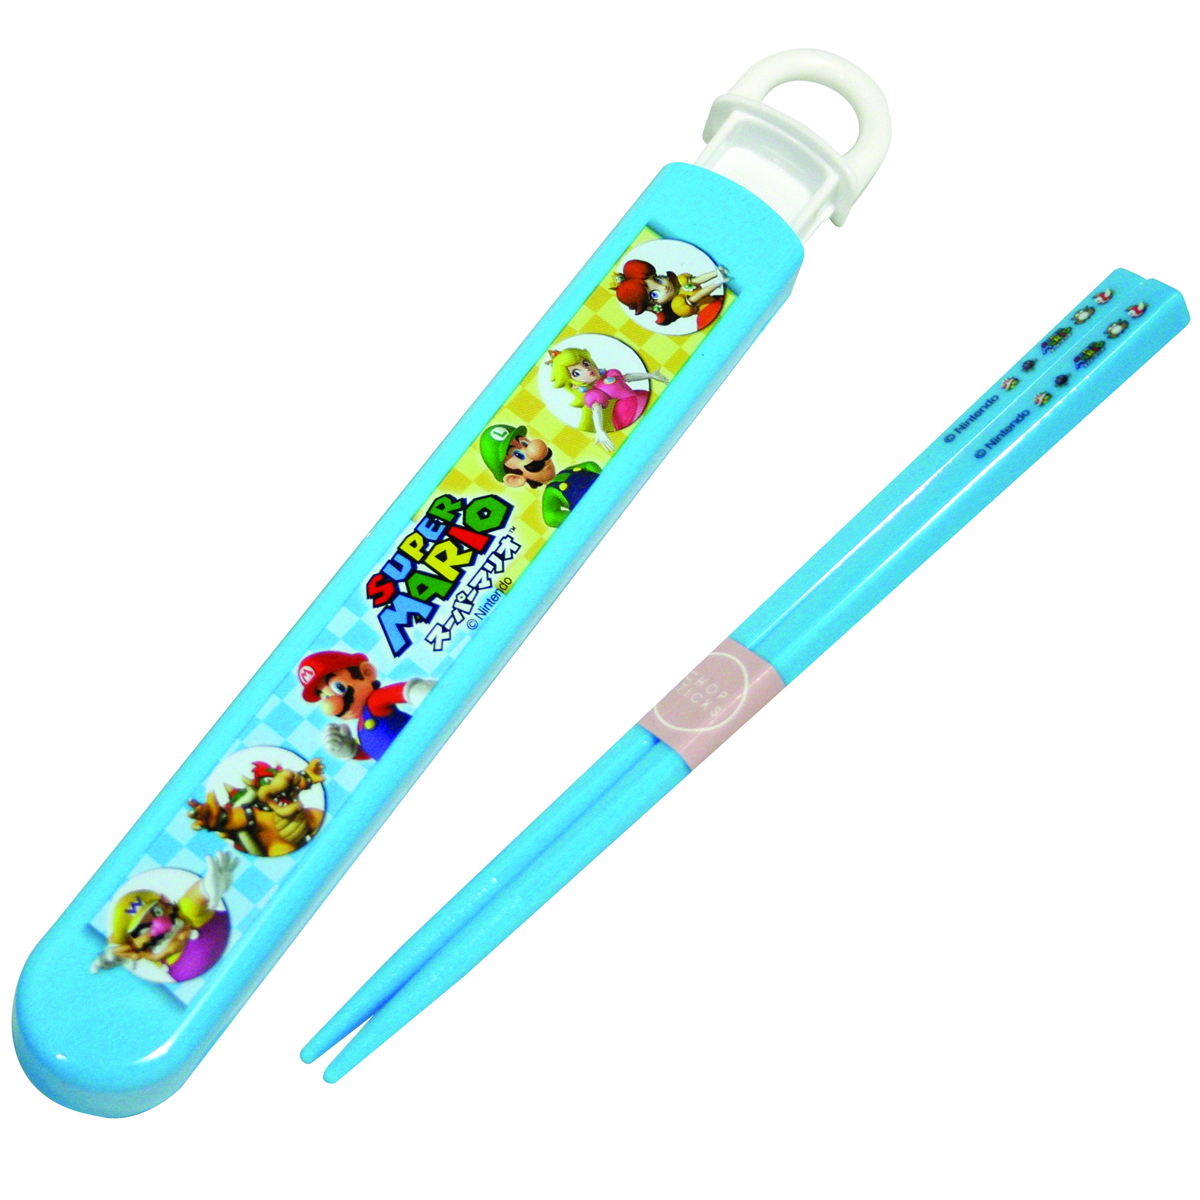 SUPER MARIO BROS. CHOPSTICKS & CASE